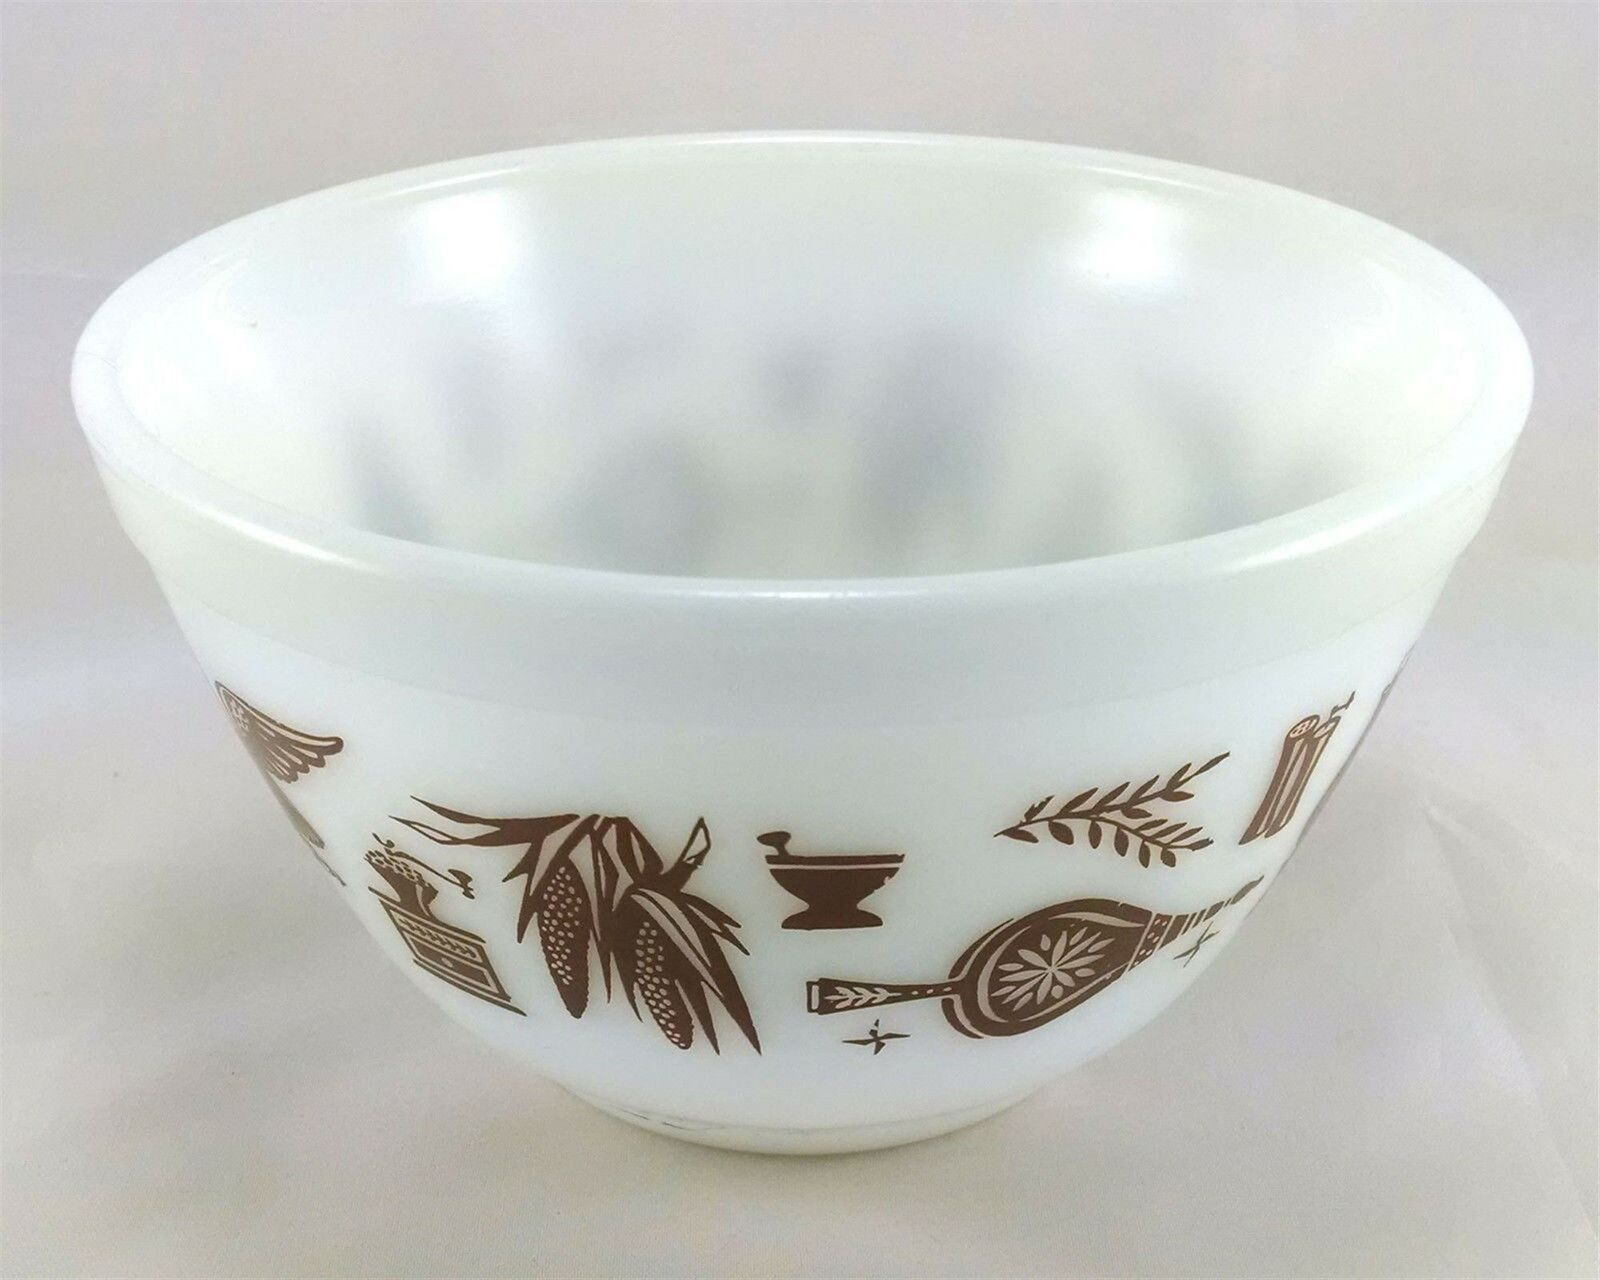 Pyrex 401 Americana 1 1/2 Pint Vintage Serving Mixing Bowl